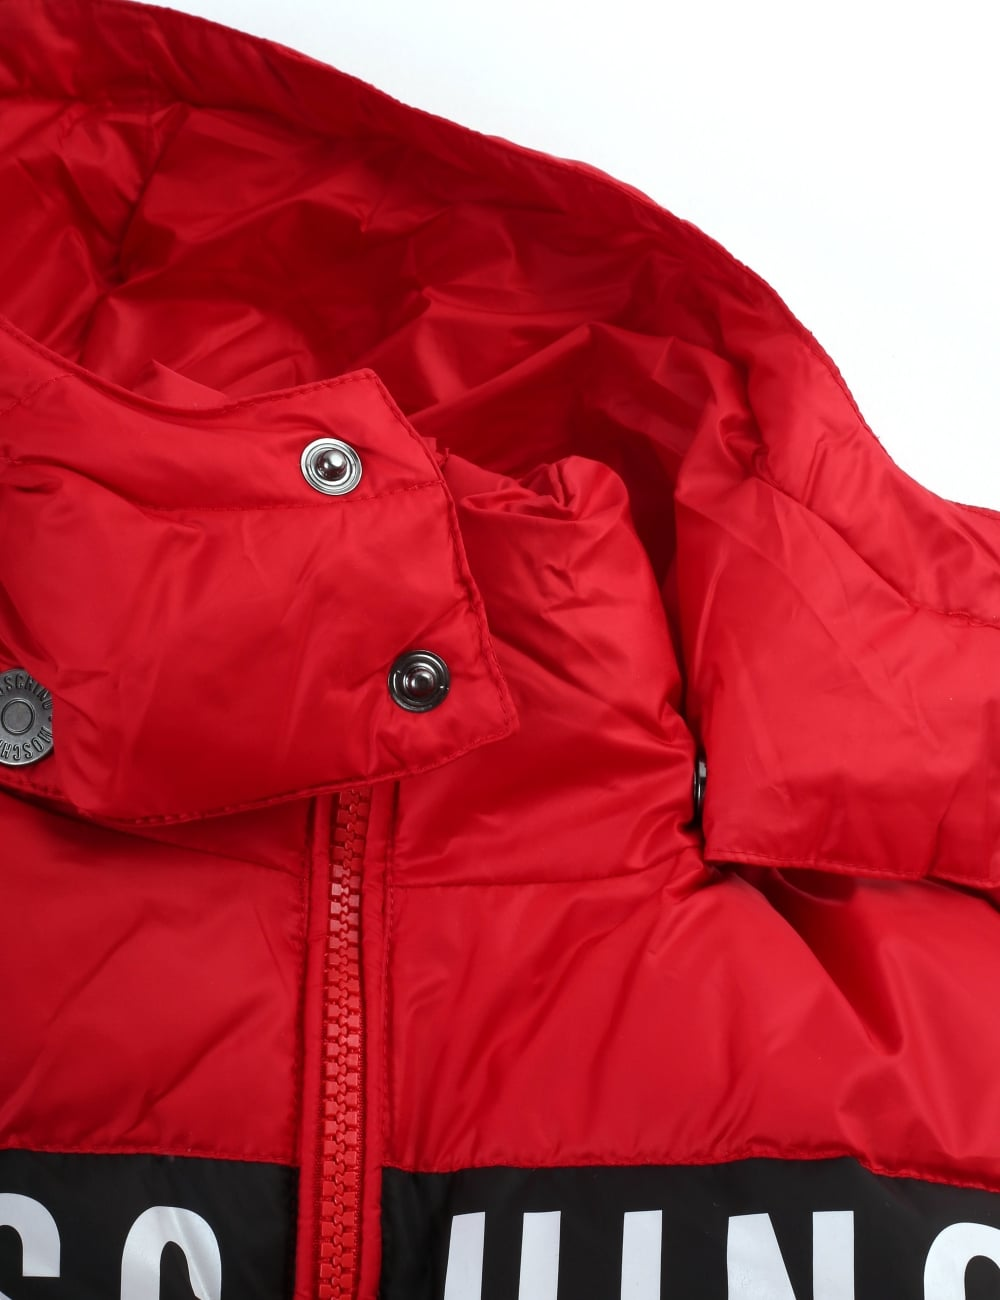 806de549c677 Moschino Youth Boys Down Padded Jacket